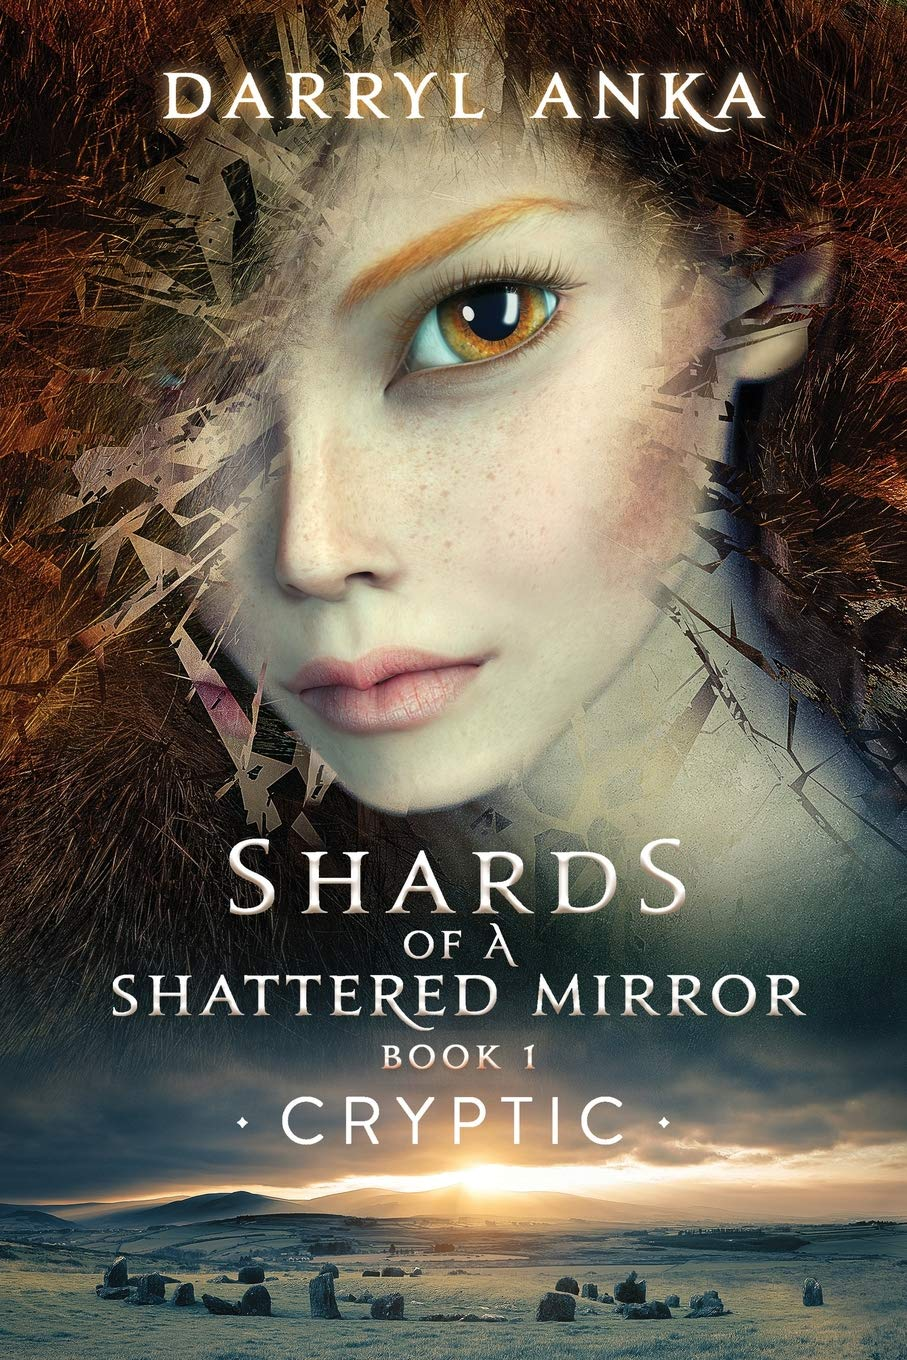 Cover of Shards of a Shattered Mirror